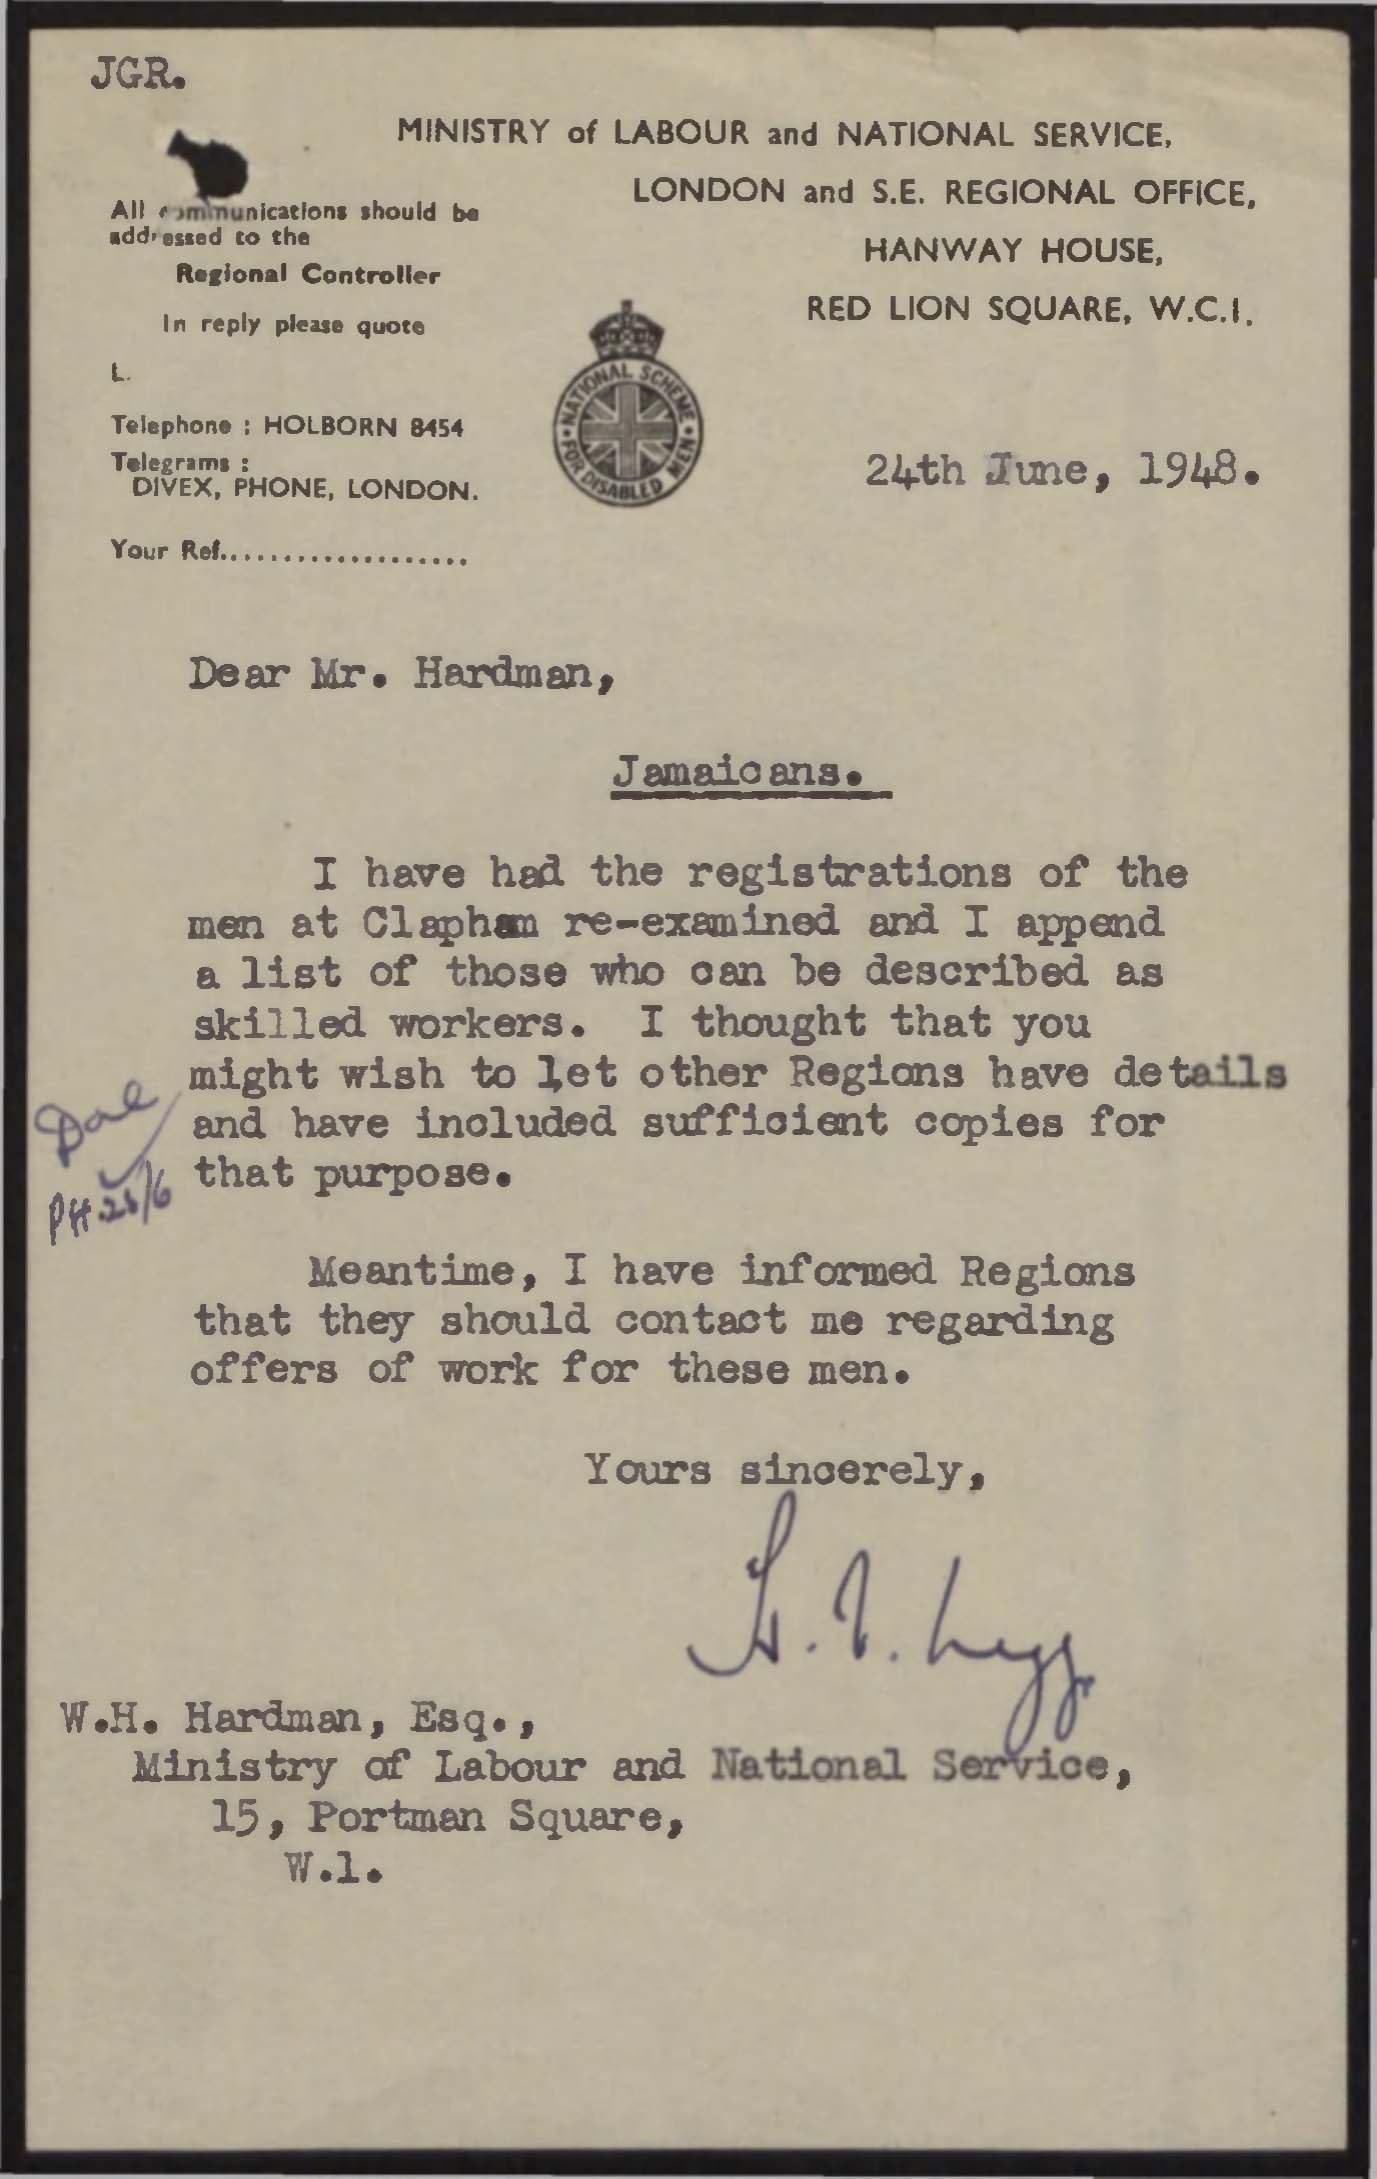 Ministry of Labour and National Service, London and S E